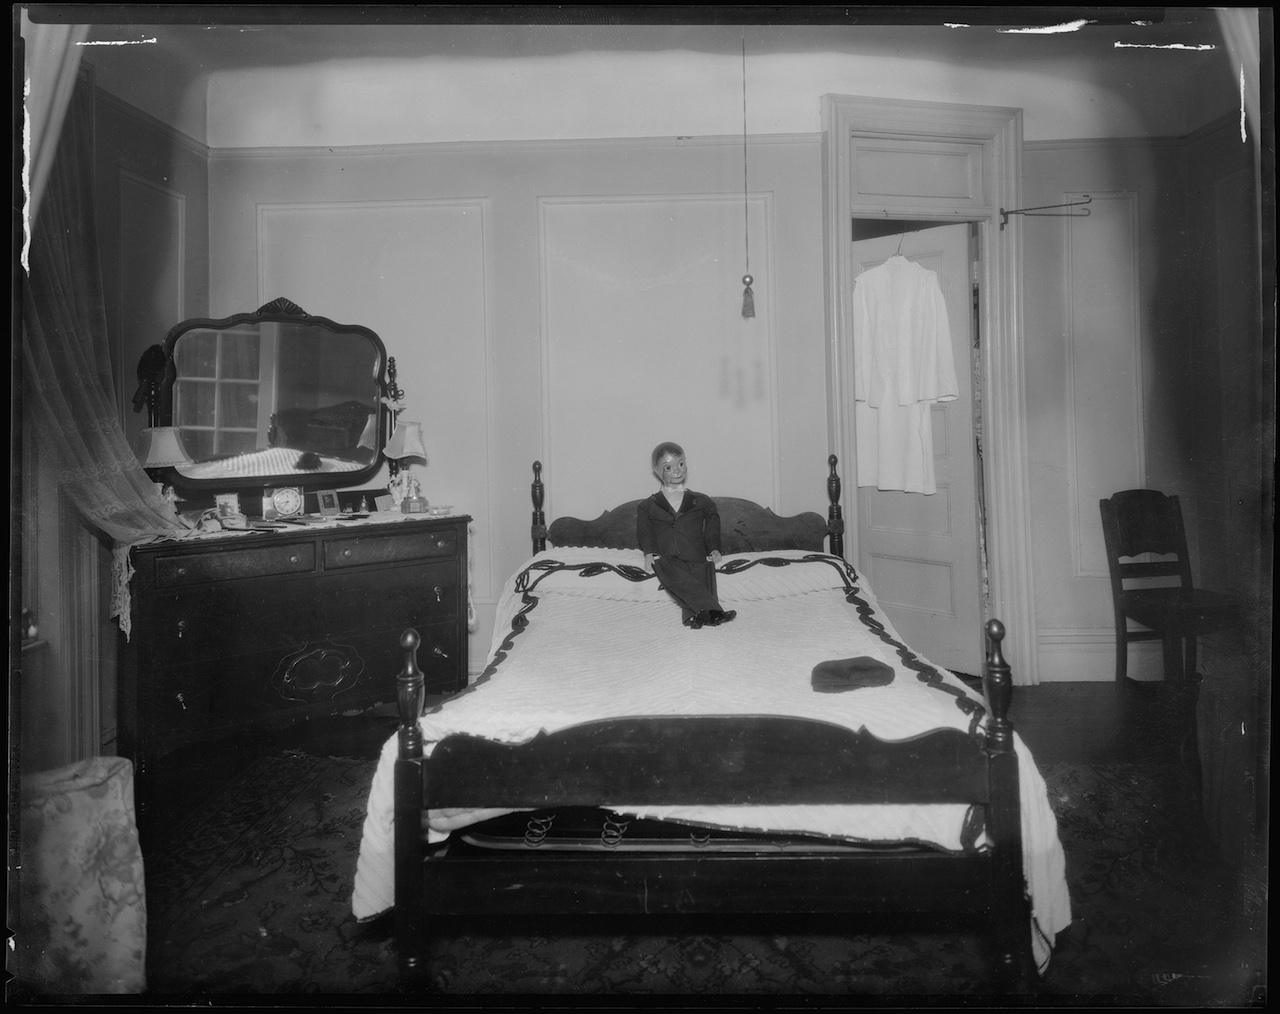 Doll on the bed of Virginia Bender at East 137th Street in the Bronx. It was here where she was found dead from apparent strangulation & stabbing (June 1939) (courtesy New York City Municipal Archives)